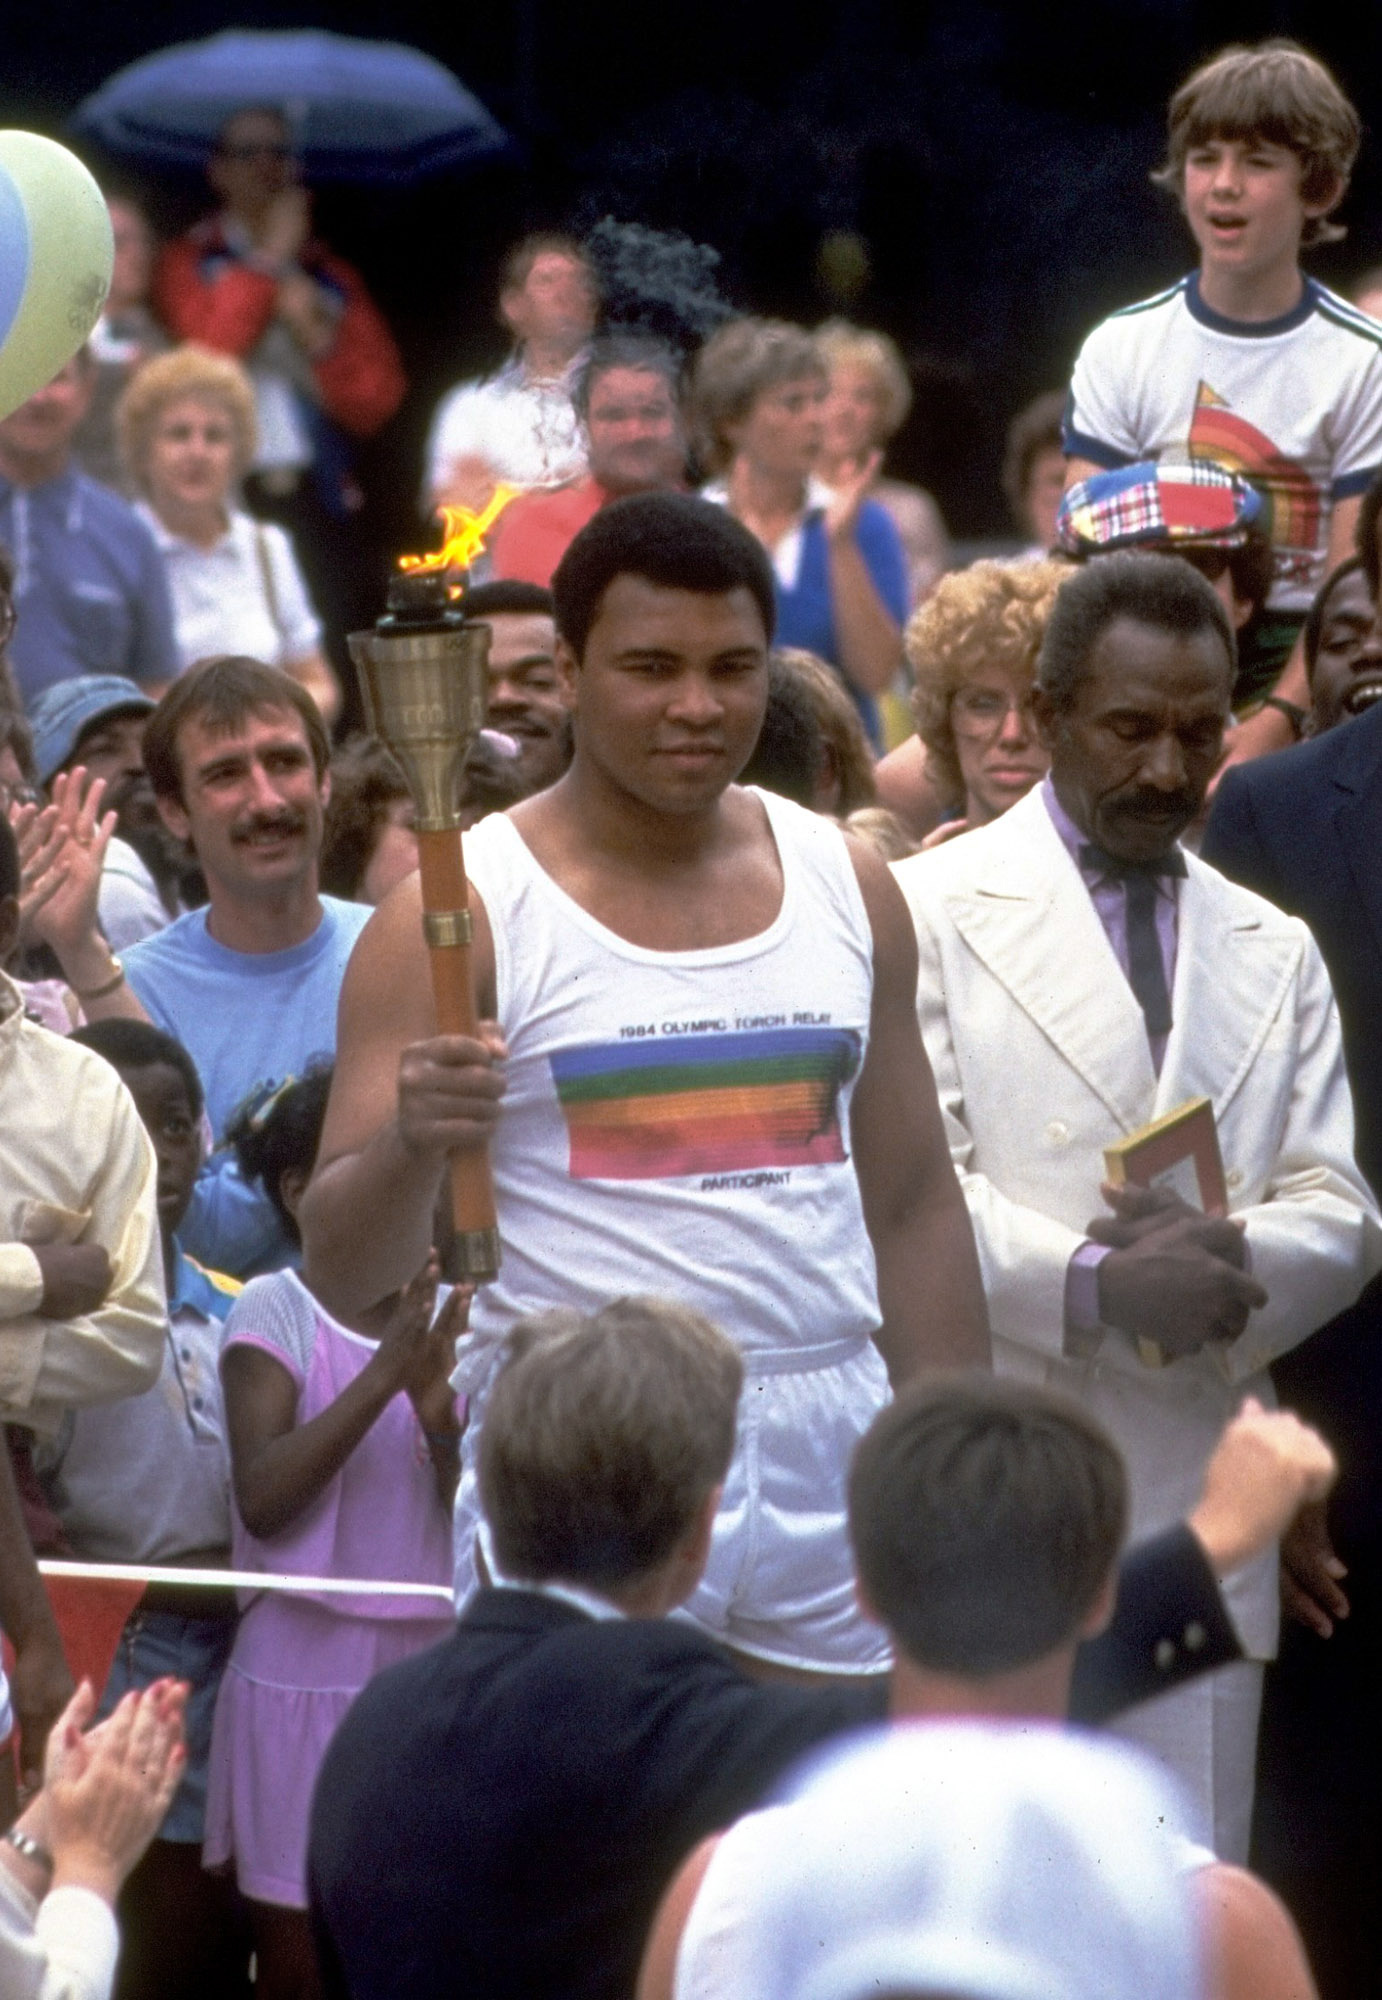 "<div class=""meta image-caption""><div class=""origin-logo origin-image ap""><span>AP</span></div><span class=""caption-text"">In this July 1984 file photo, former heavyweight champion Muhammad Ali carries the Olympic torch into the stadium in Los Angeles. (AP Photo/File)</span></div>"